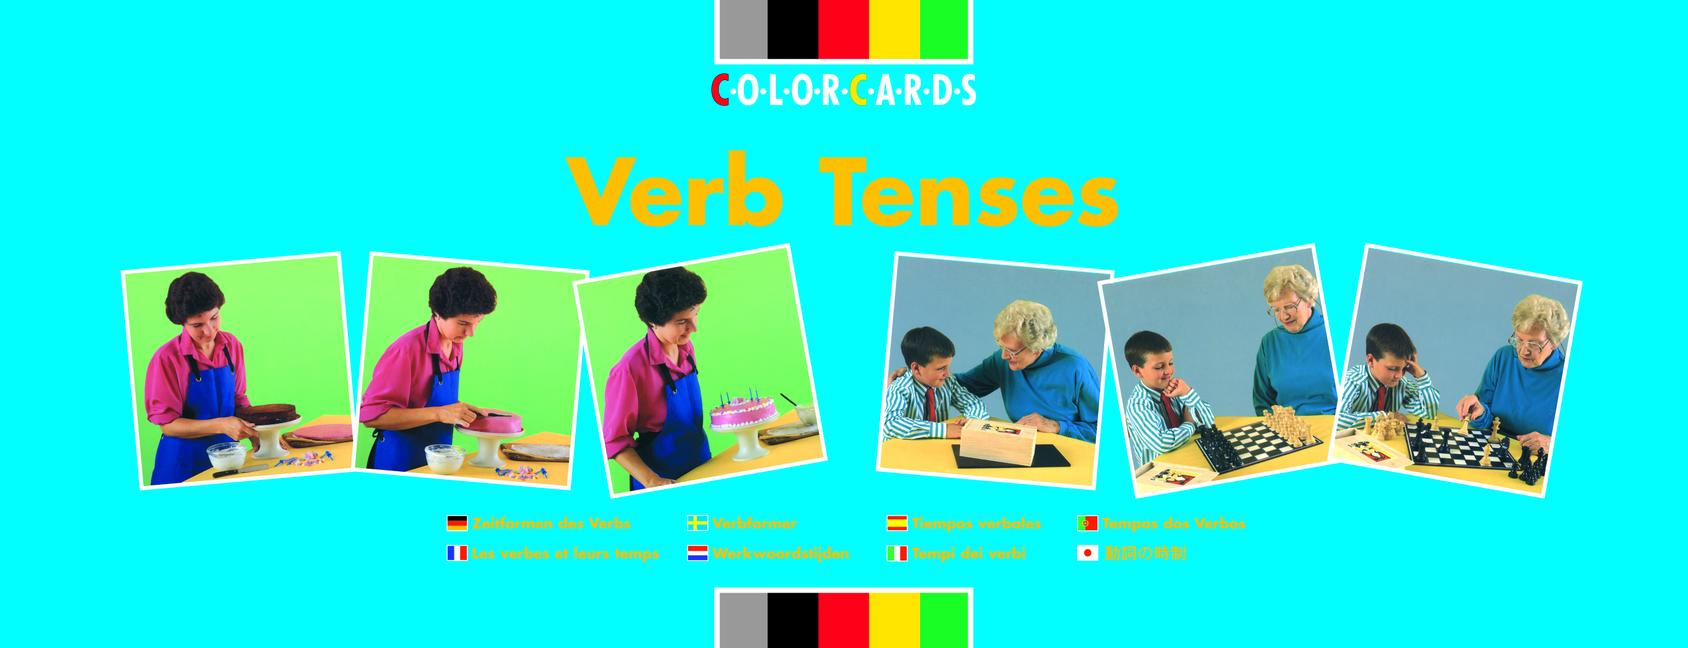 Verb Tenses: Colorcards book cover